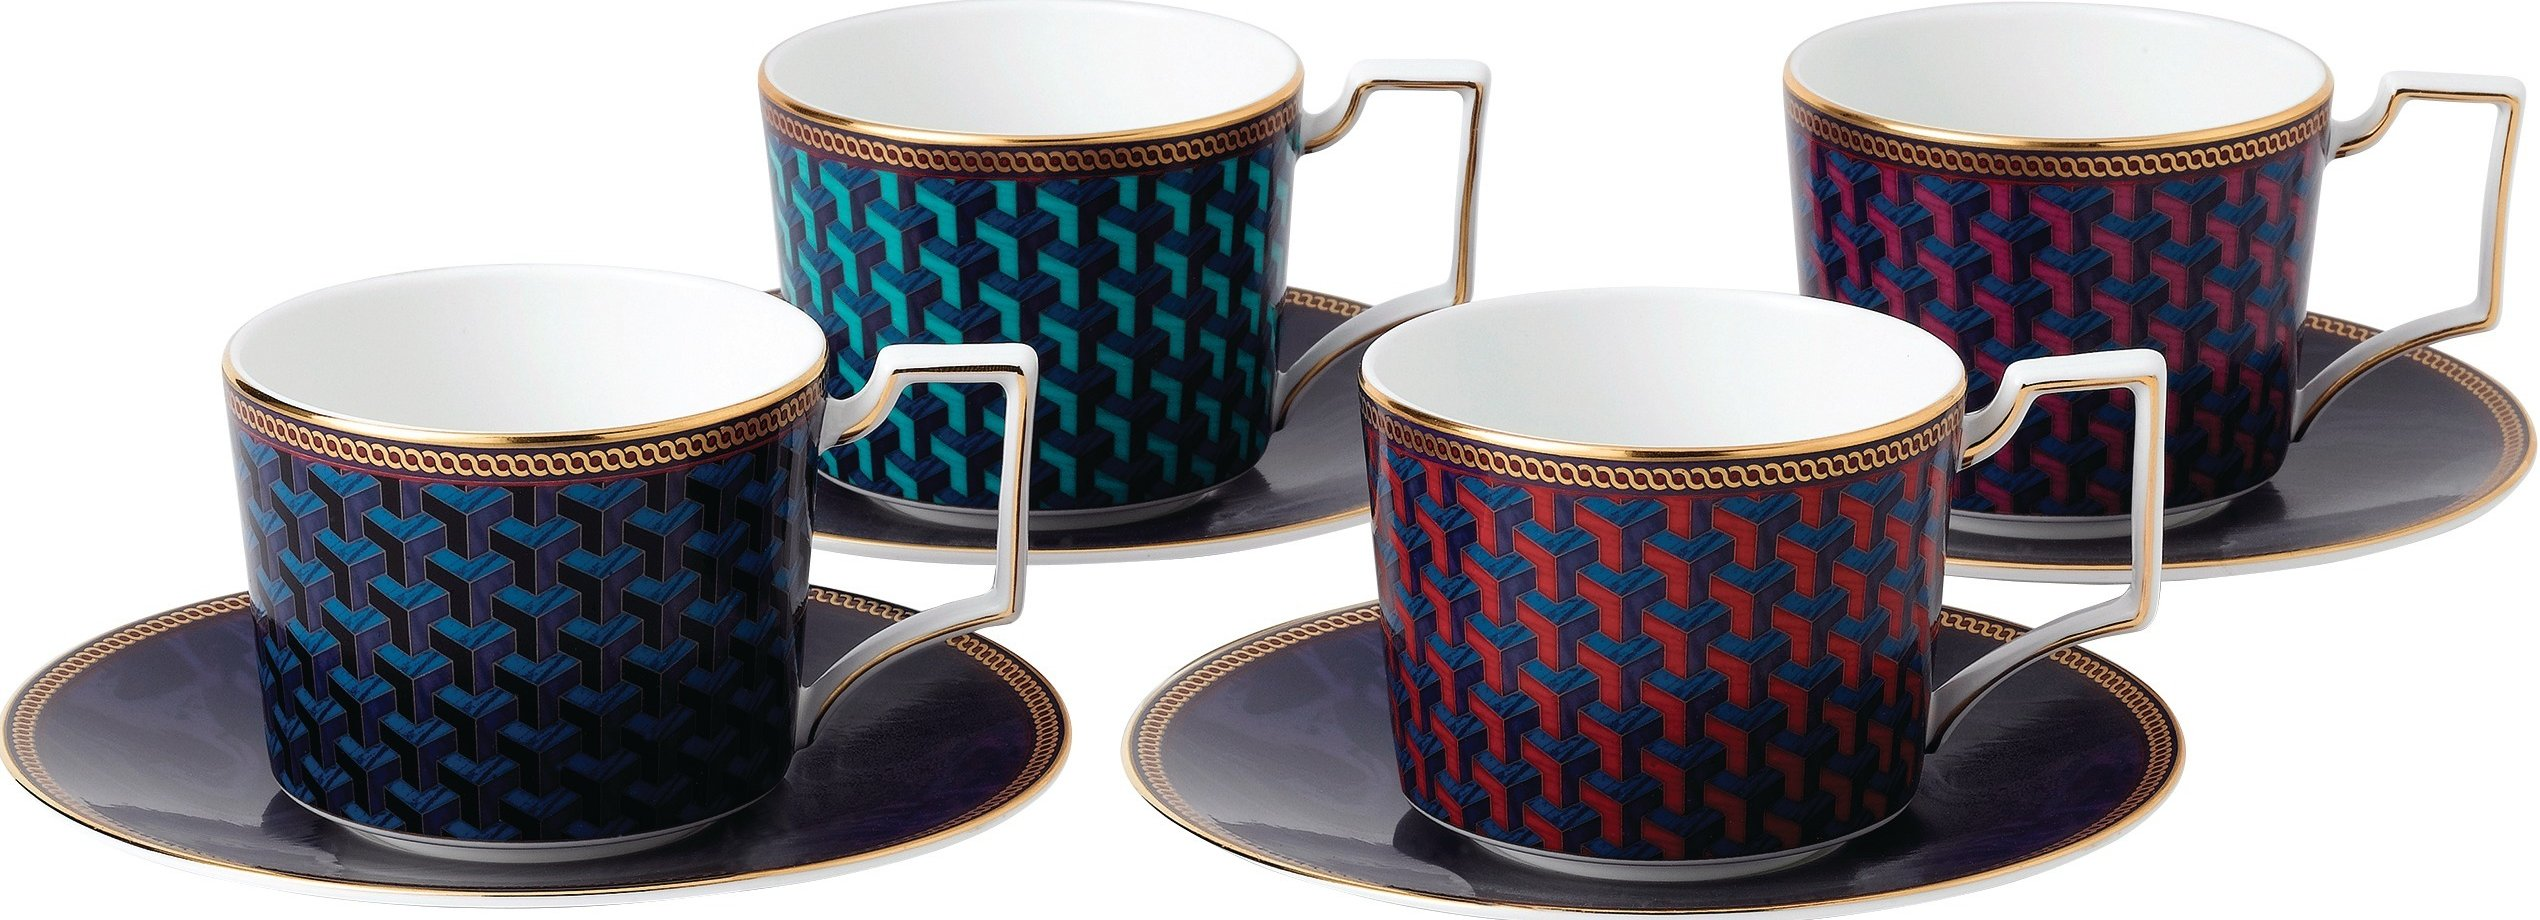 Wedgwood Byzance espresso cup and saucer - set of 4